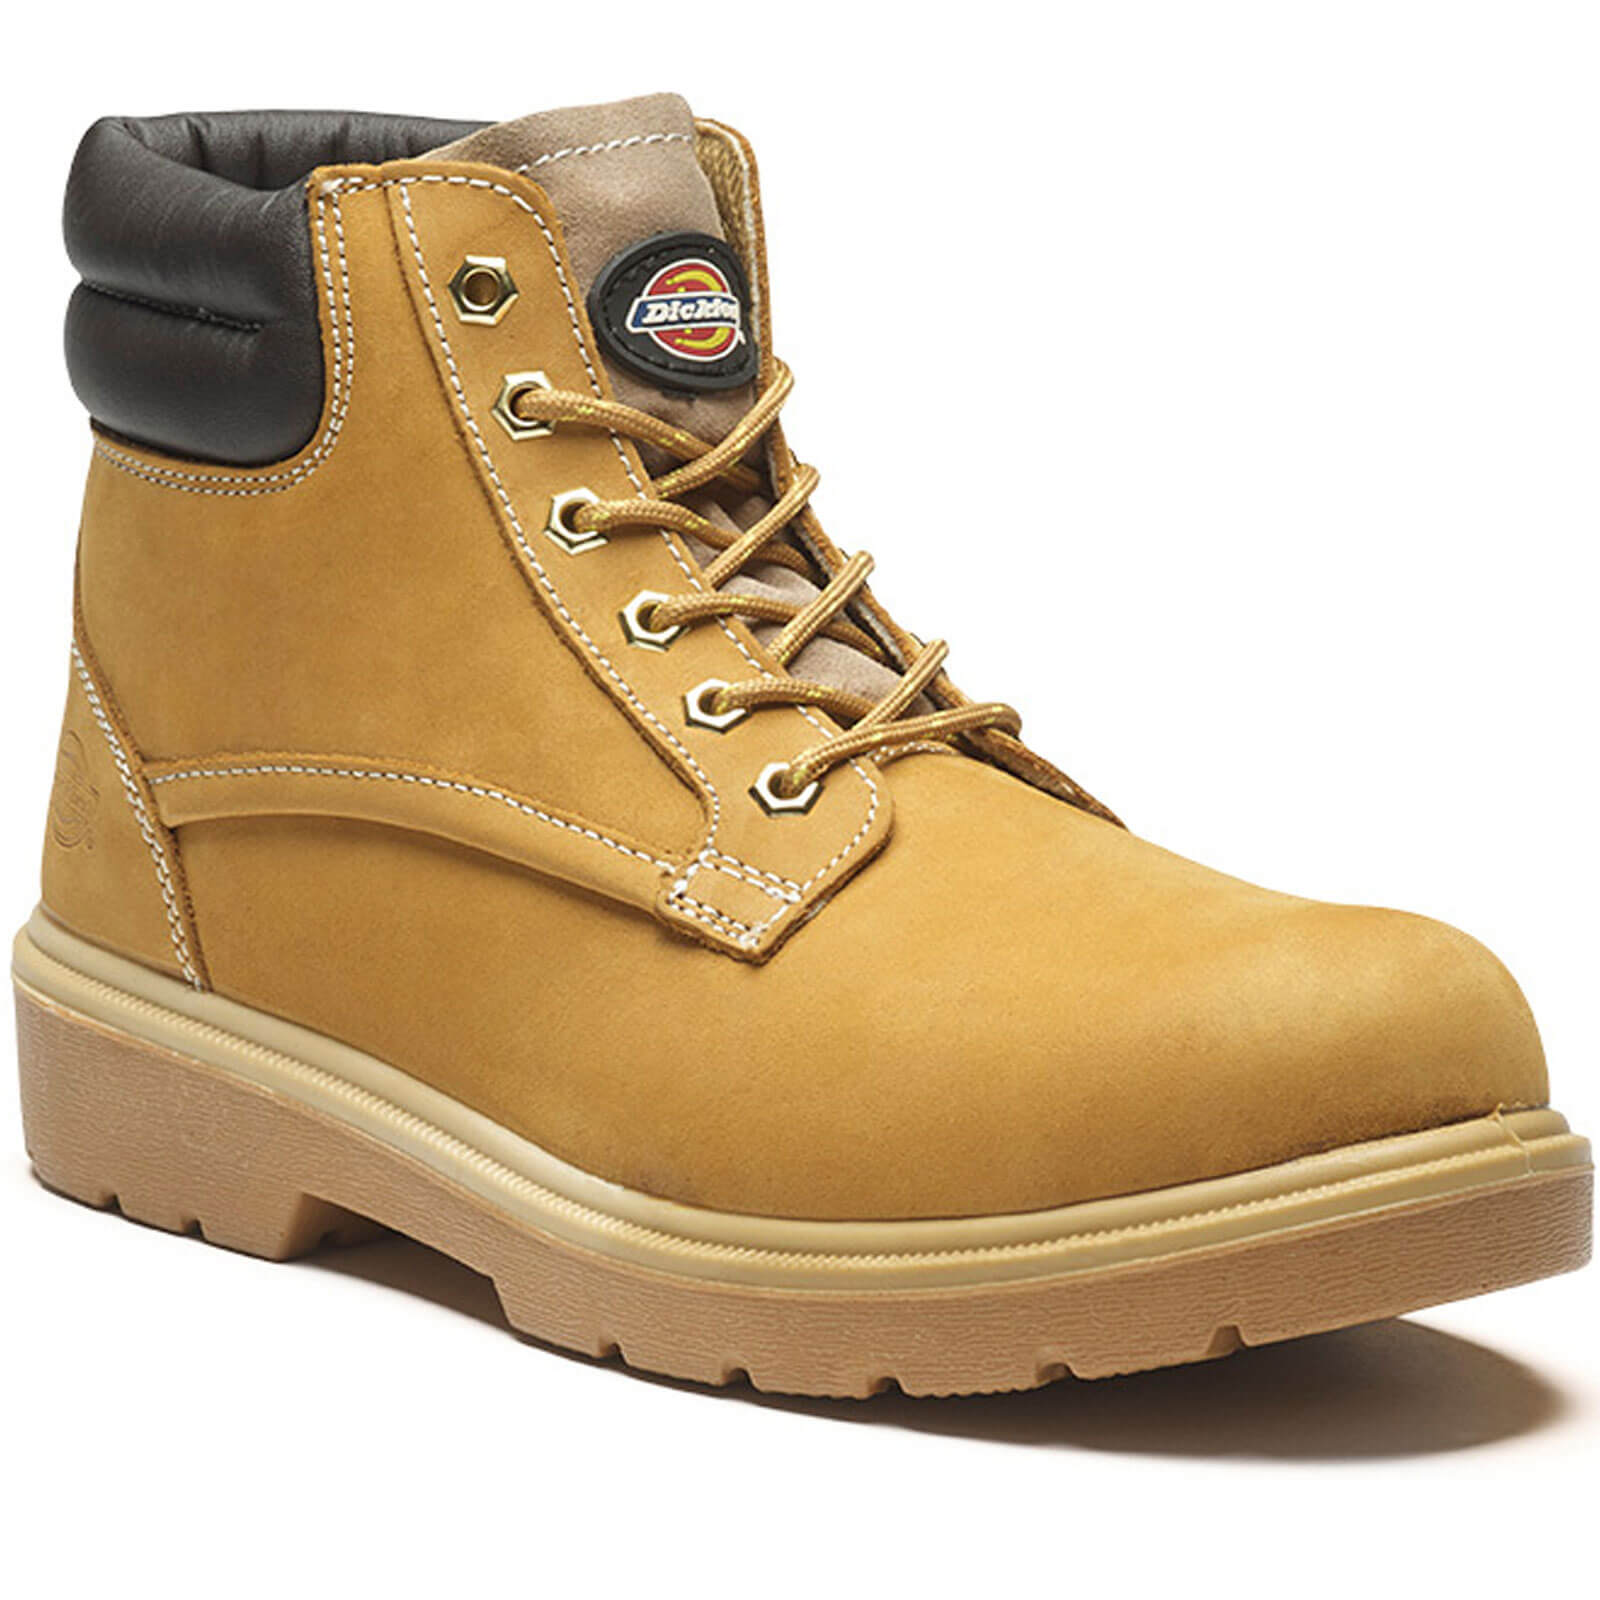 Dickies Mens Donegal Safety Boots Honey Size 5.5